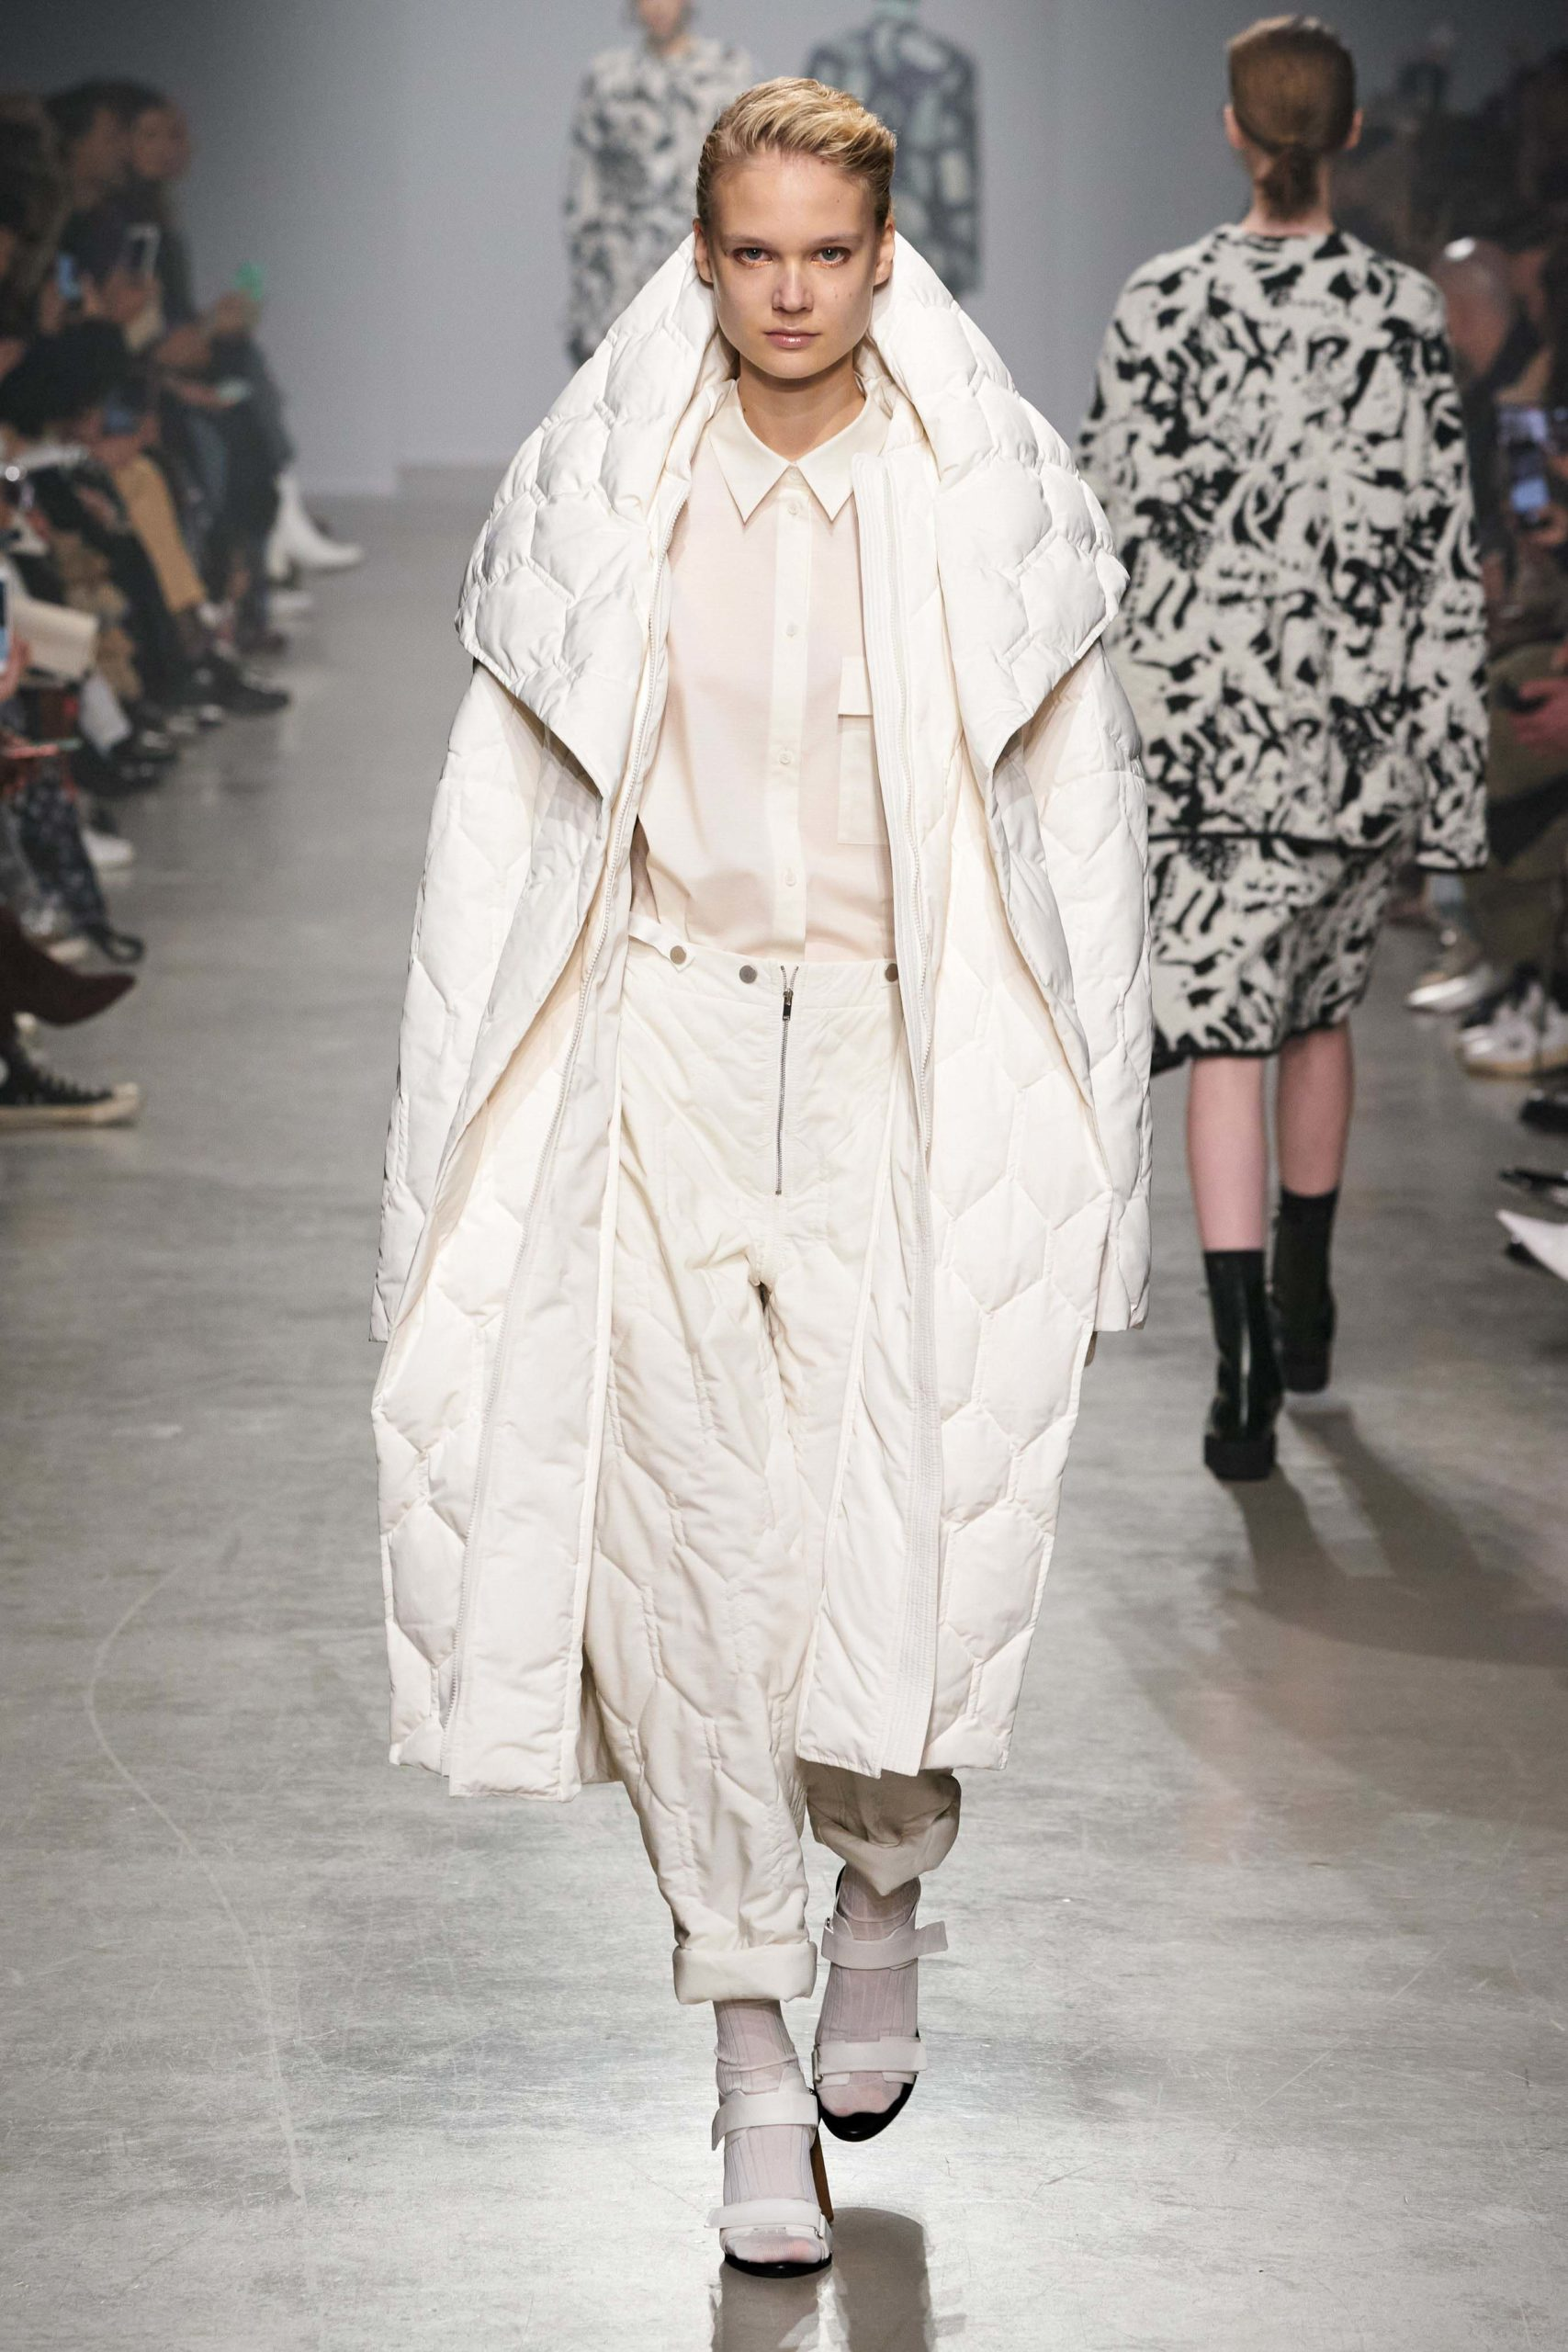 Christian Wijnants Fall Winter 2020 trends runway coverage Ready To Wear Vogue waffle quilted